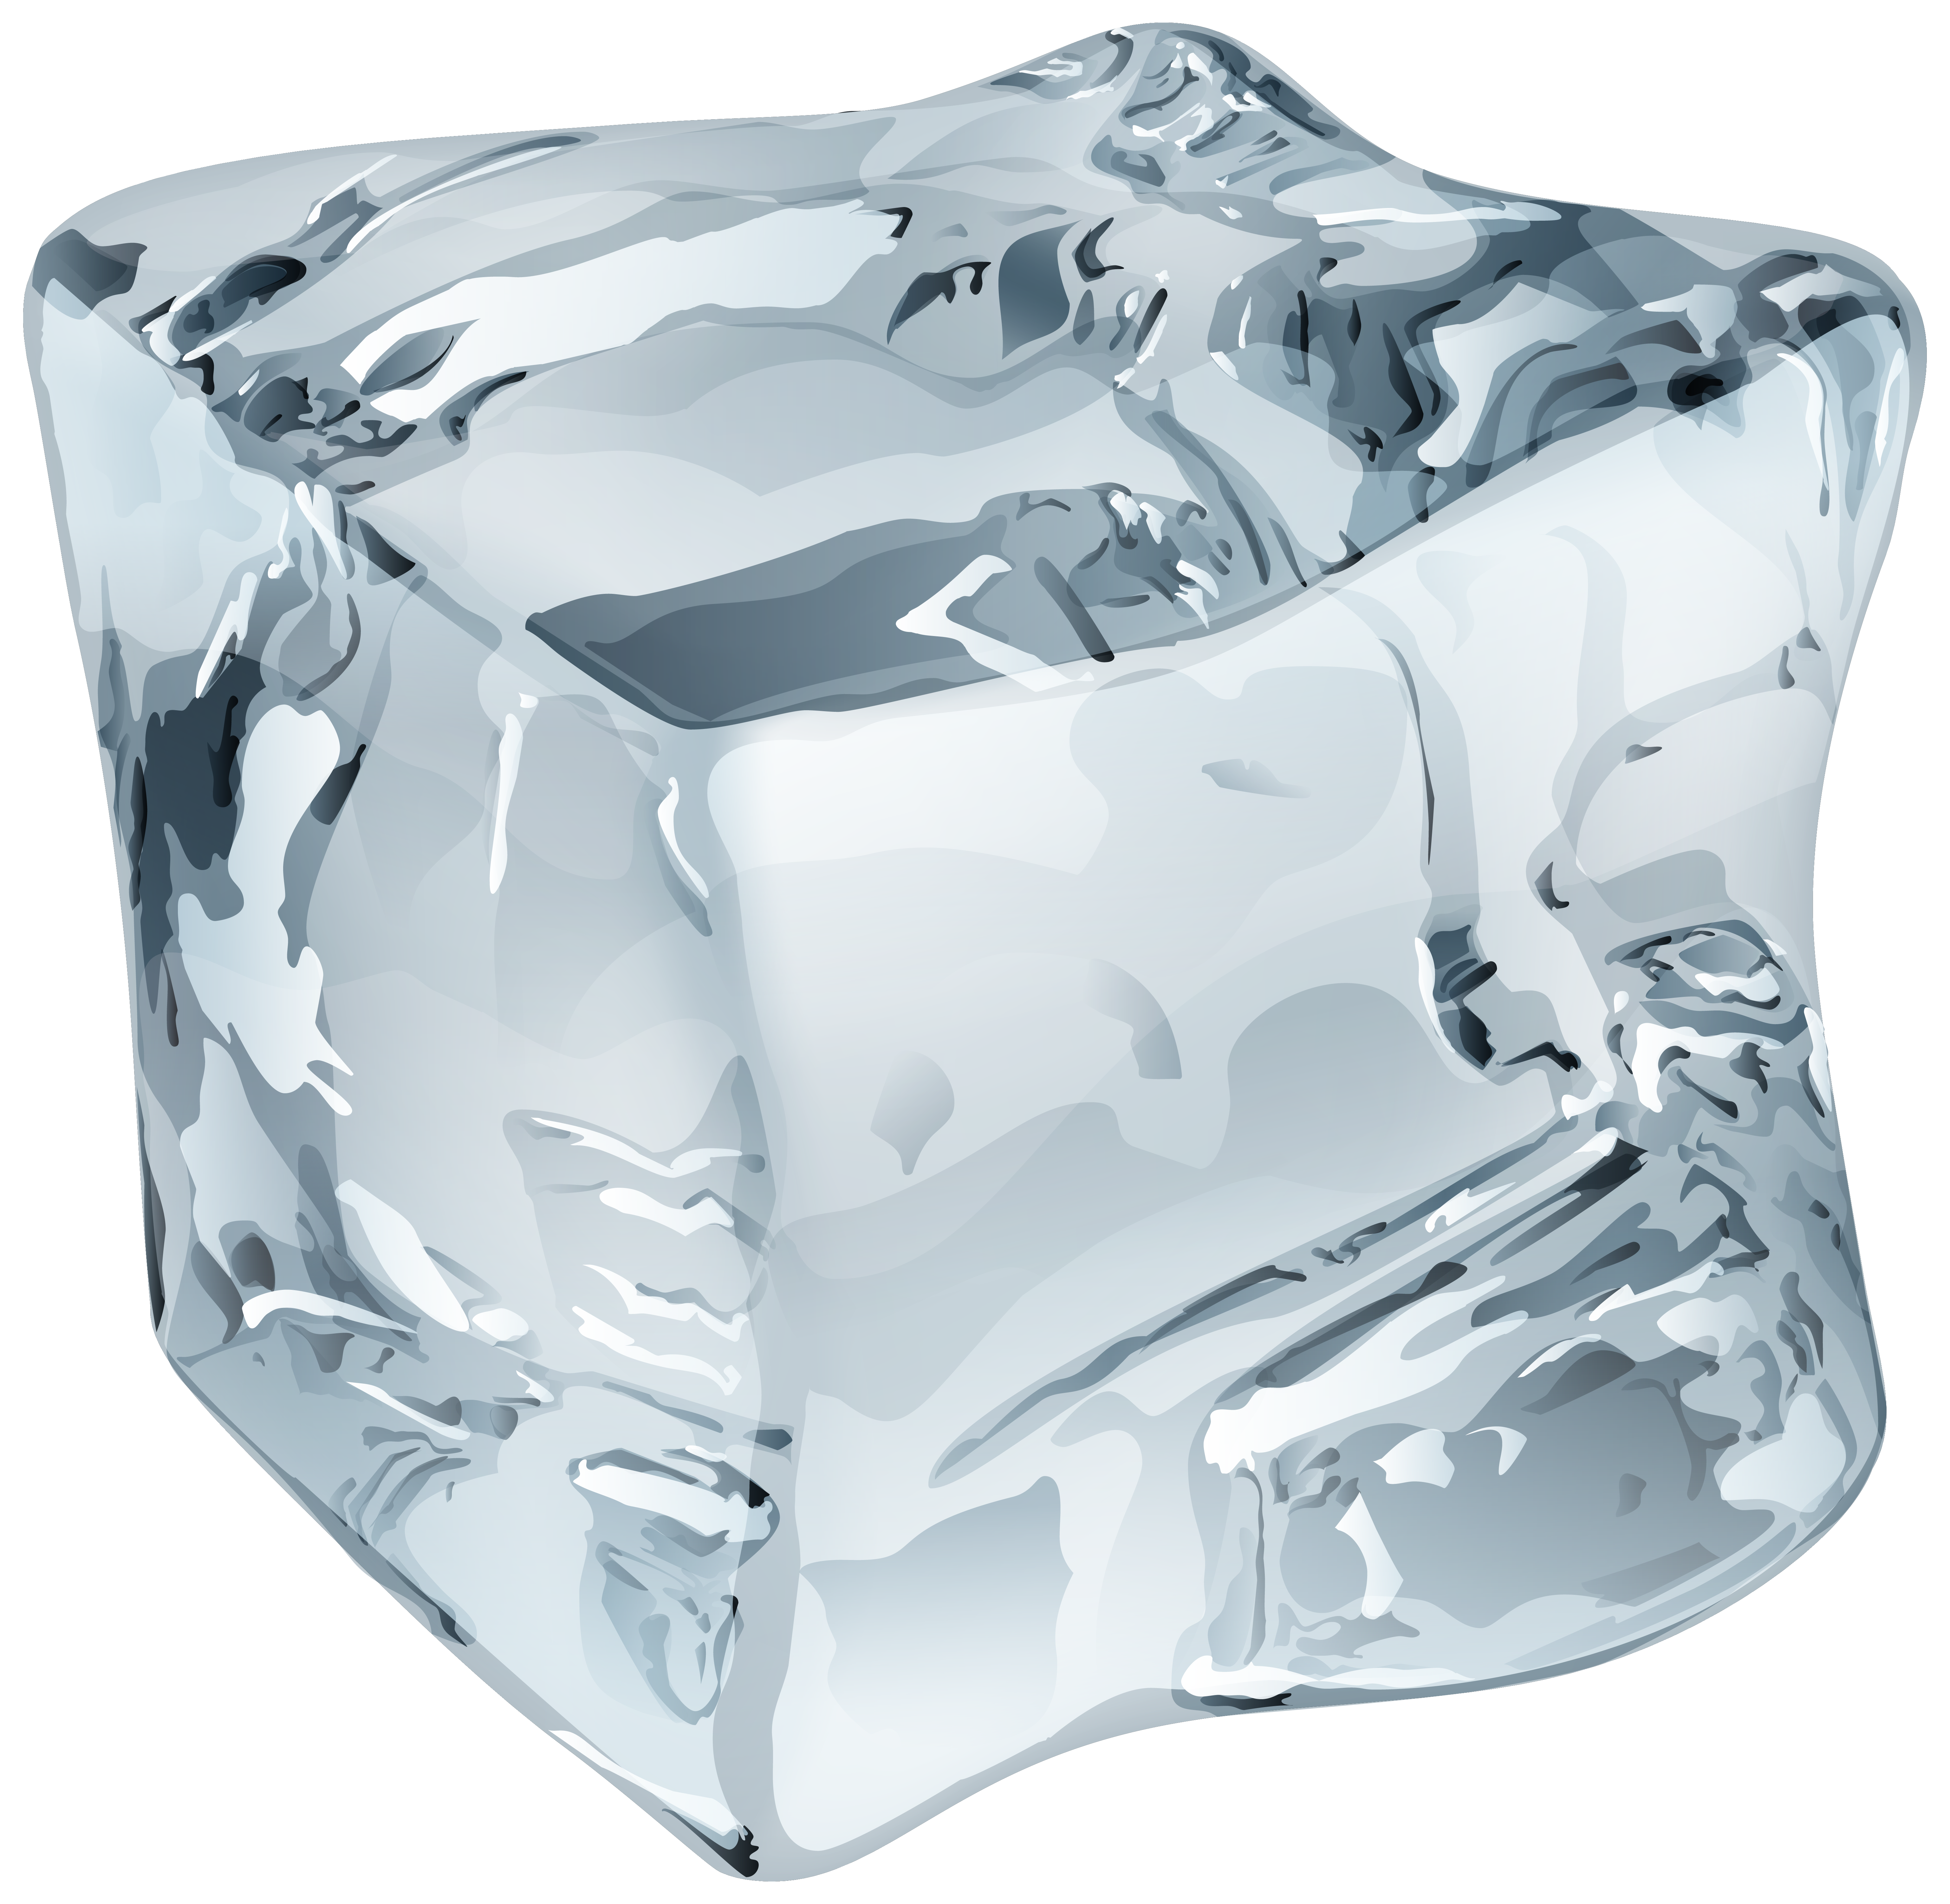 Clipart cube ice melting in the sun graphic royalty free stock Large Ice Cube PNG Clip Art - Best WEB Clipart graphic royalty free stock